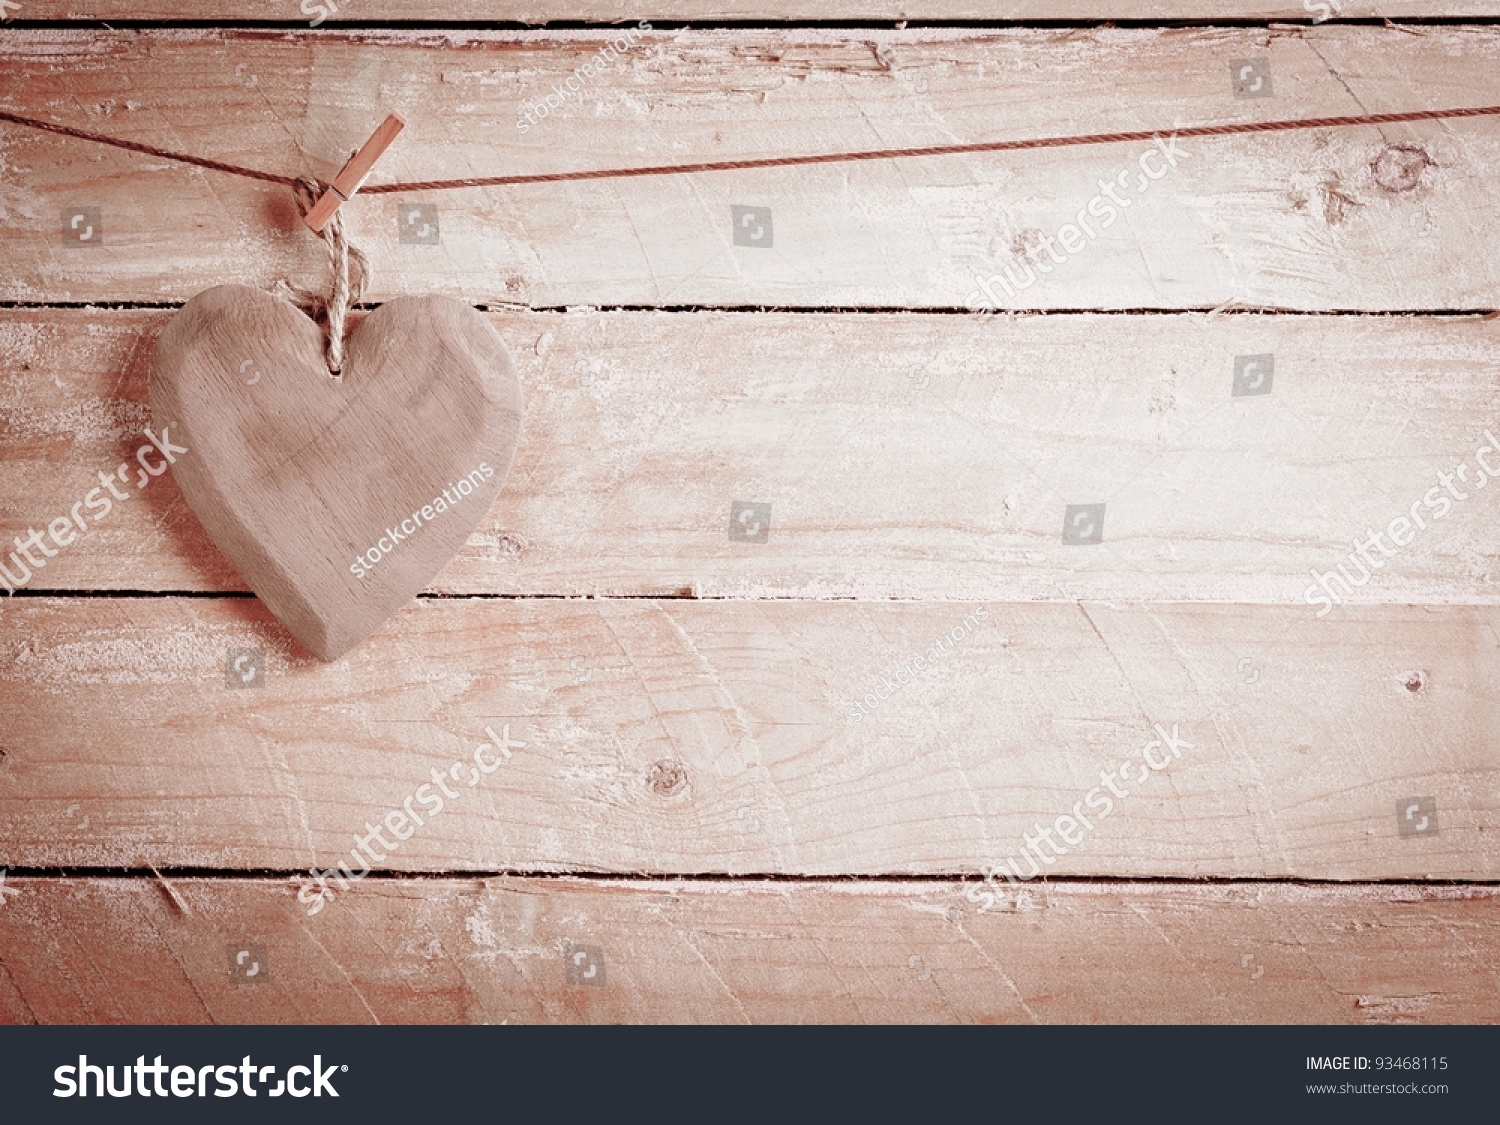 Quaint rustic wooden heart hanging peg stock photo for Rustic concept